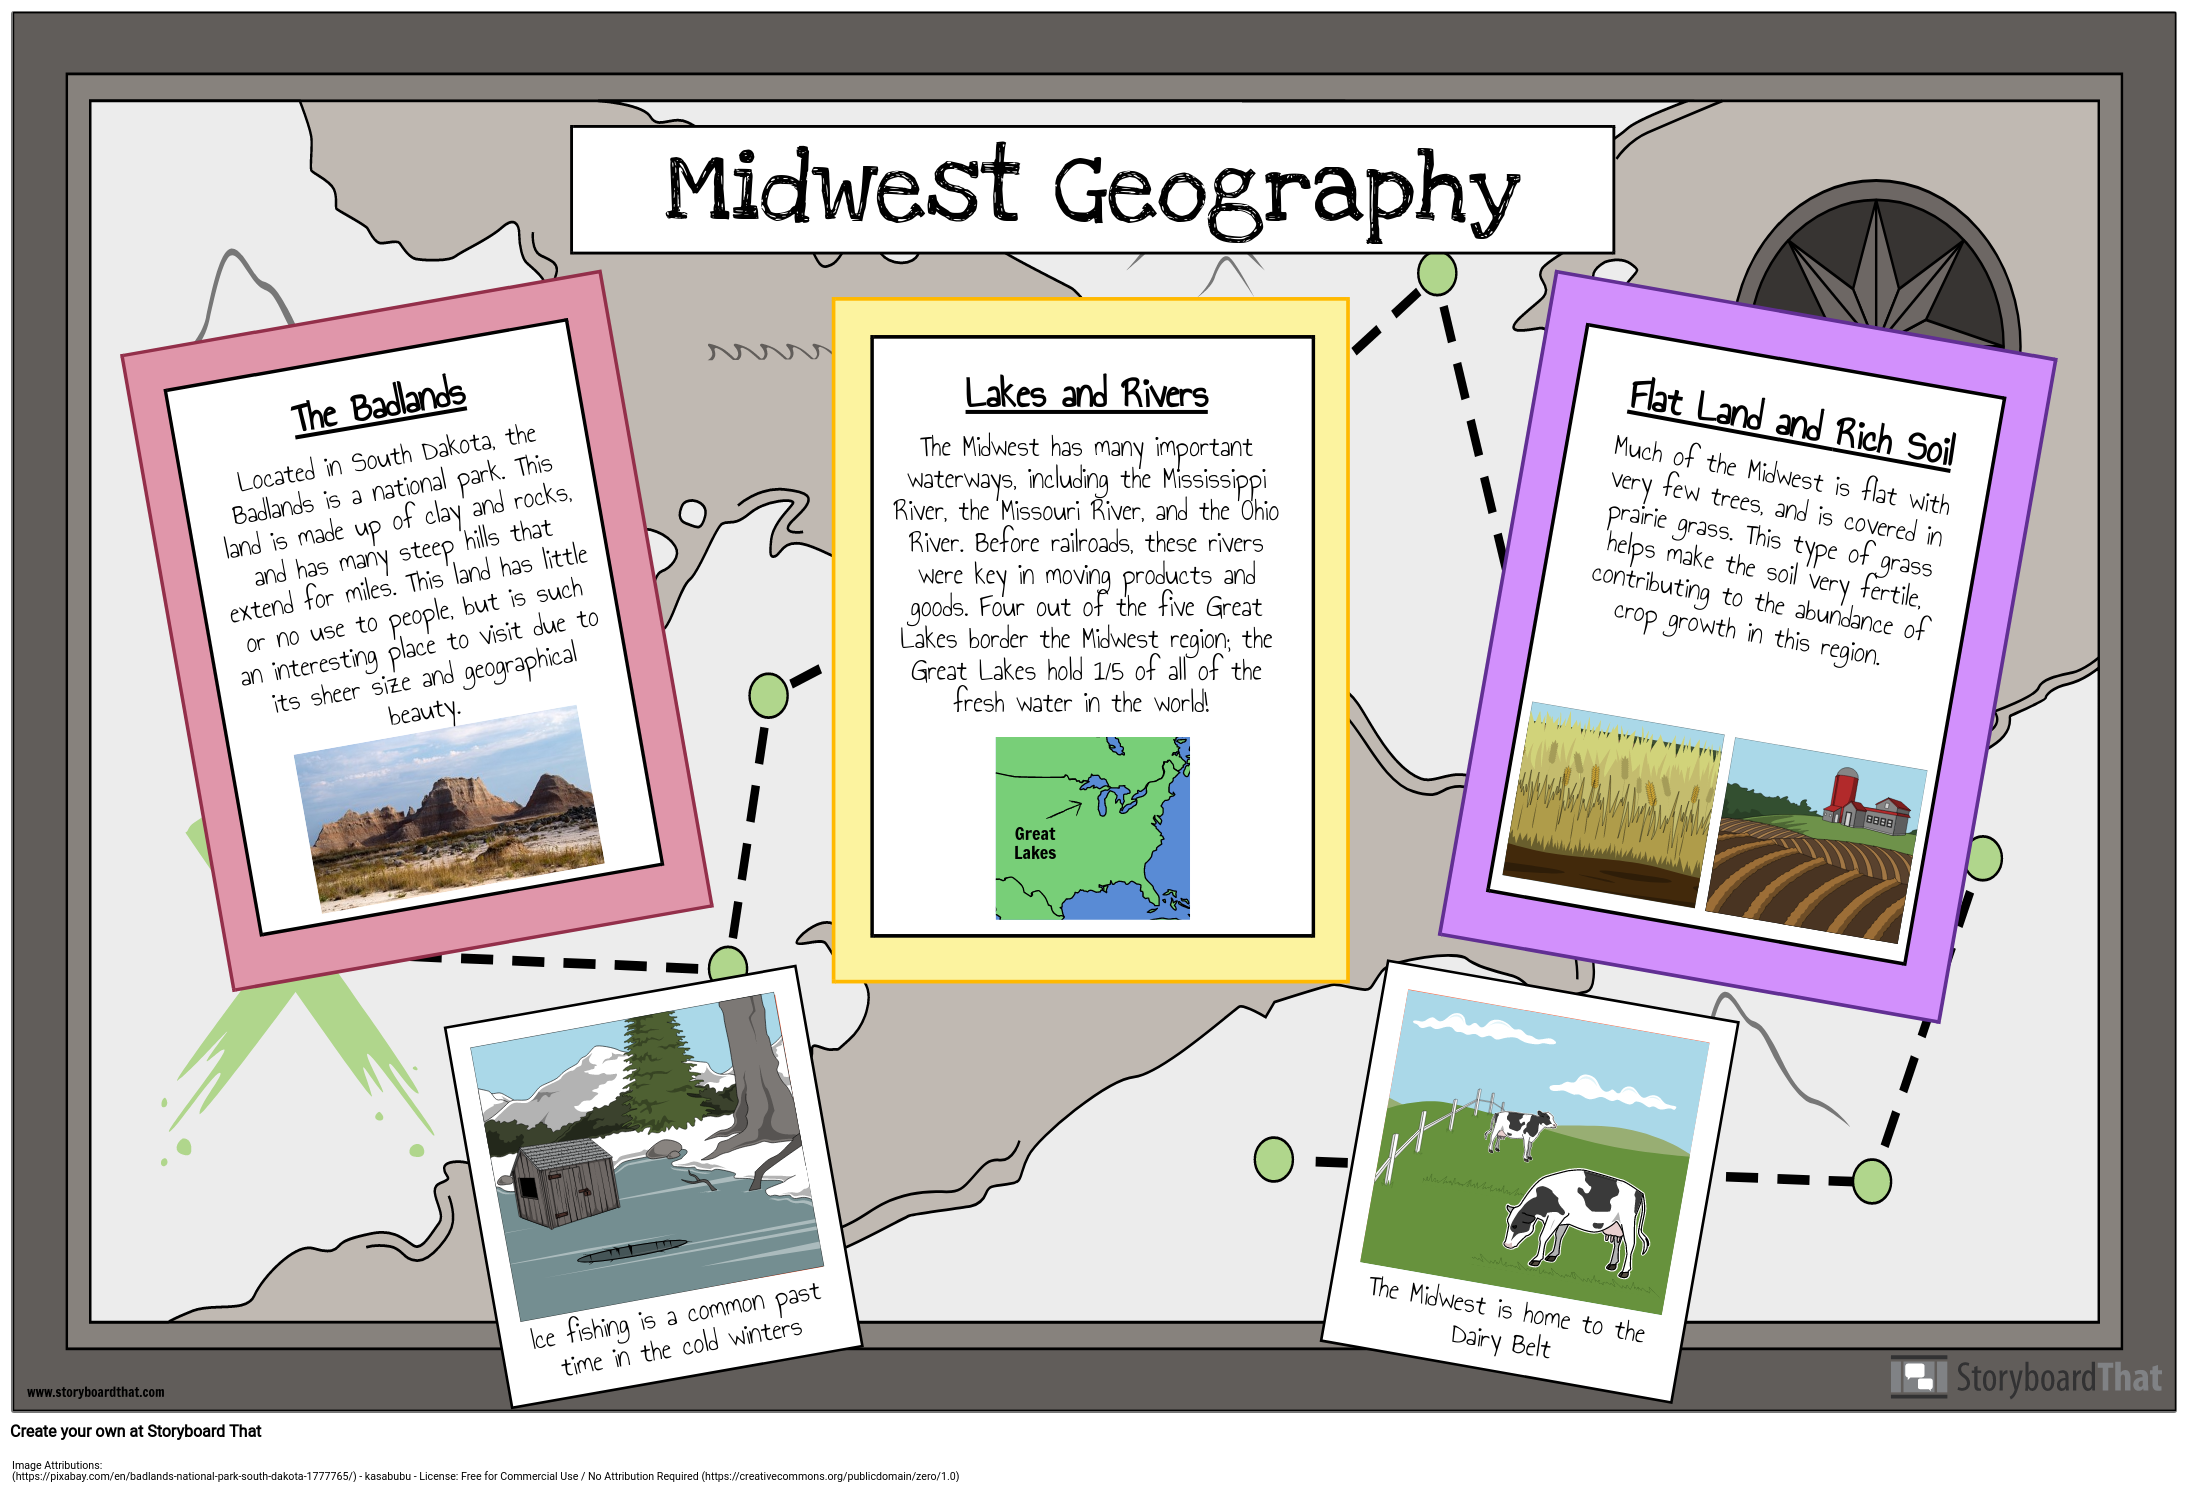 Midwest Geography